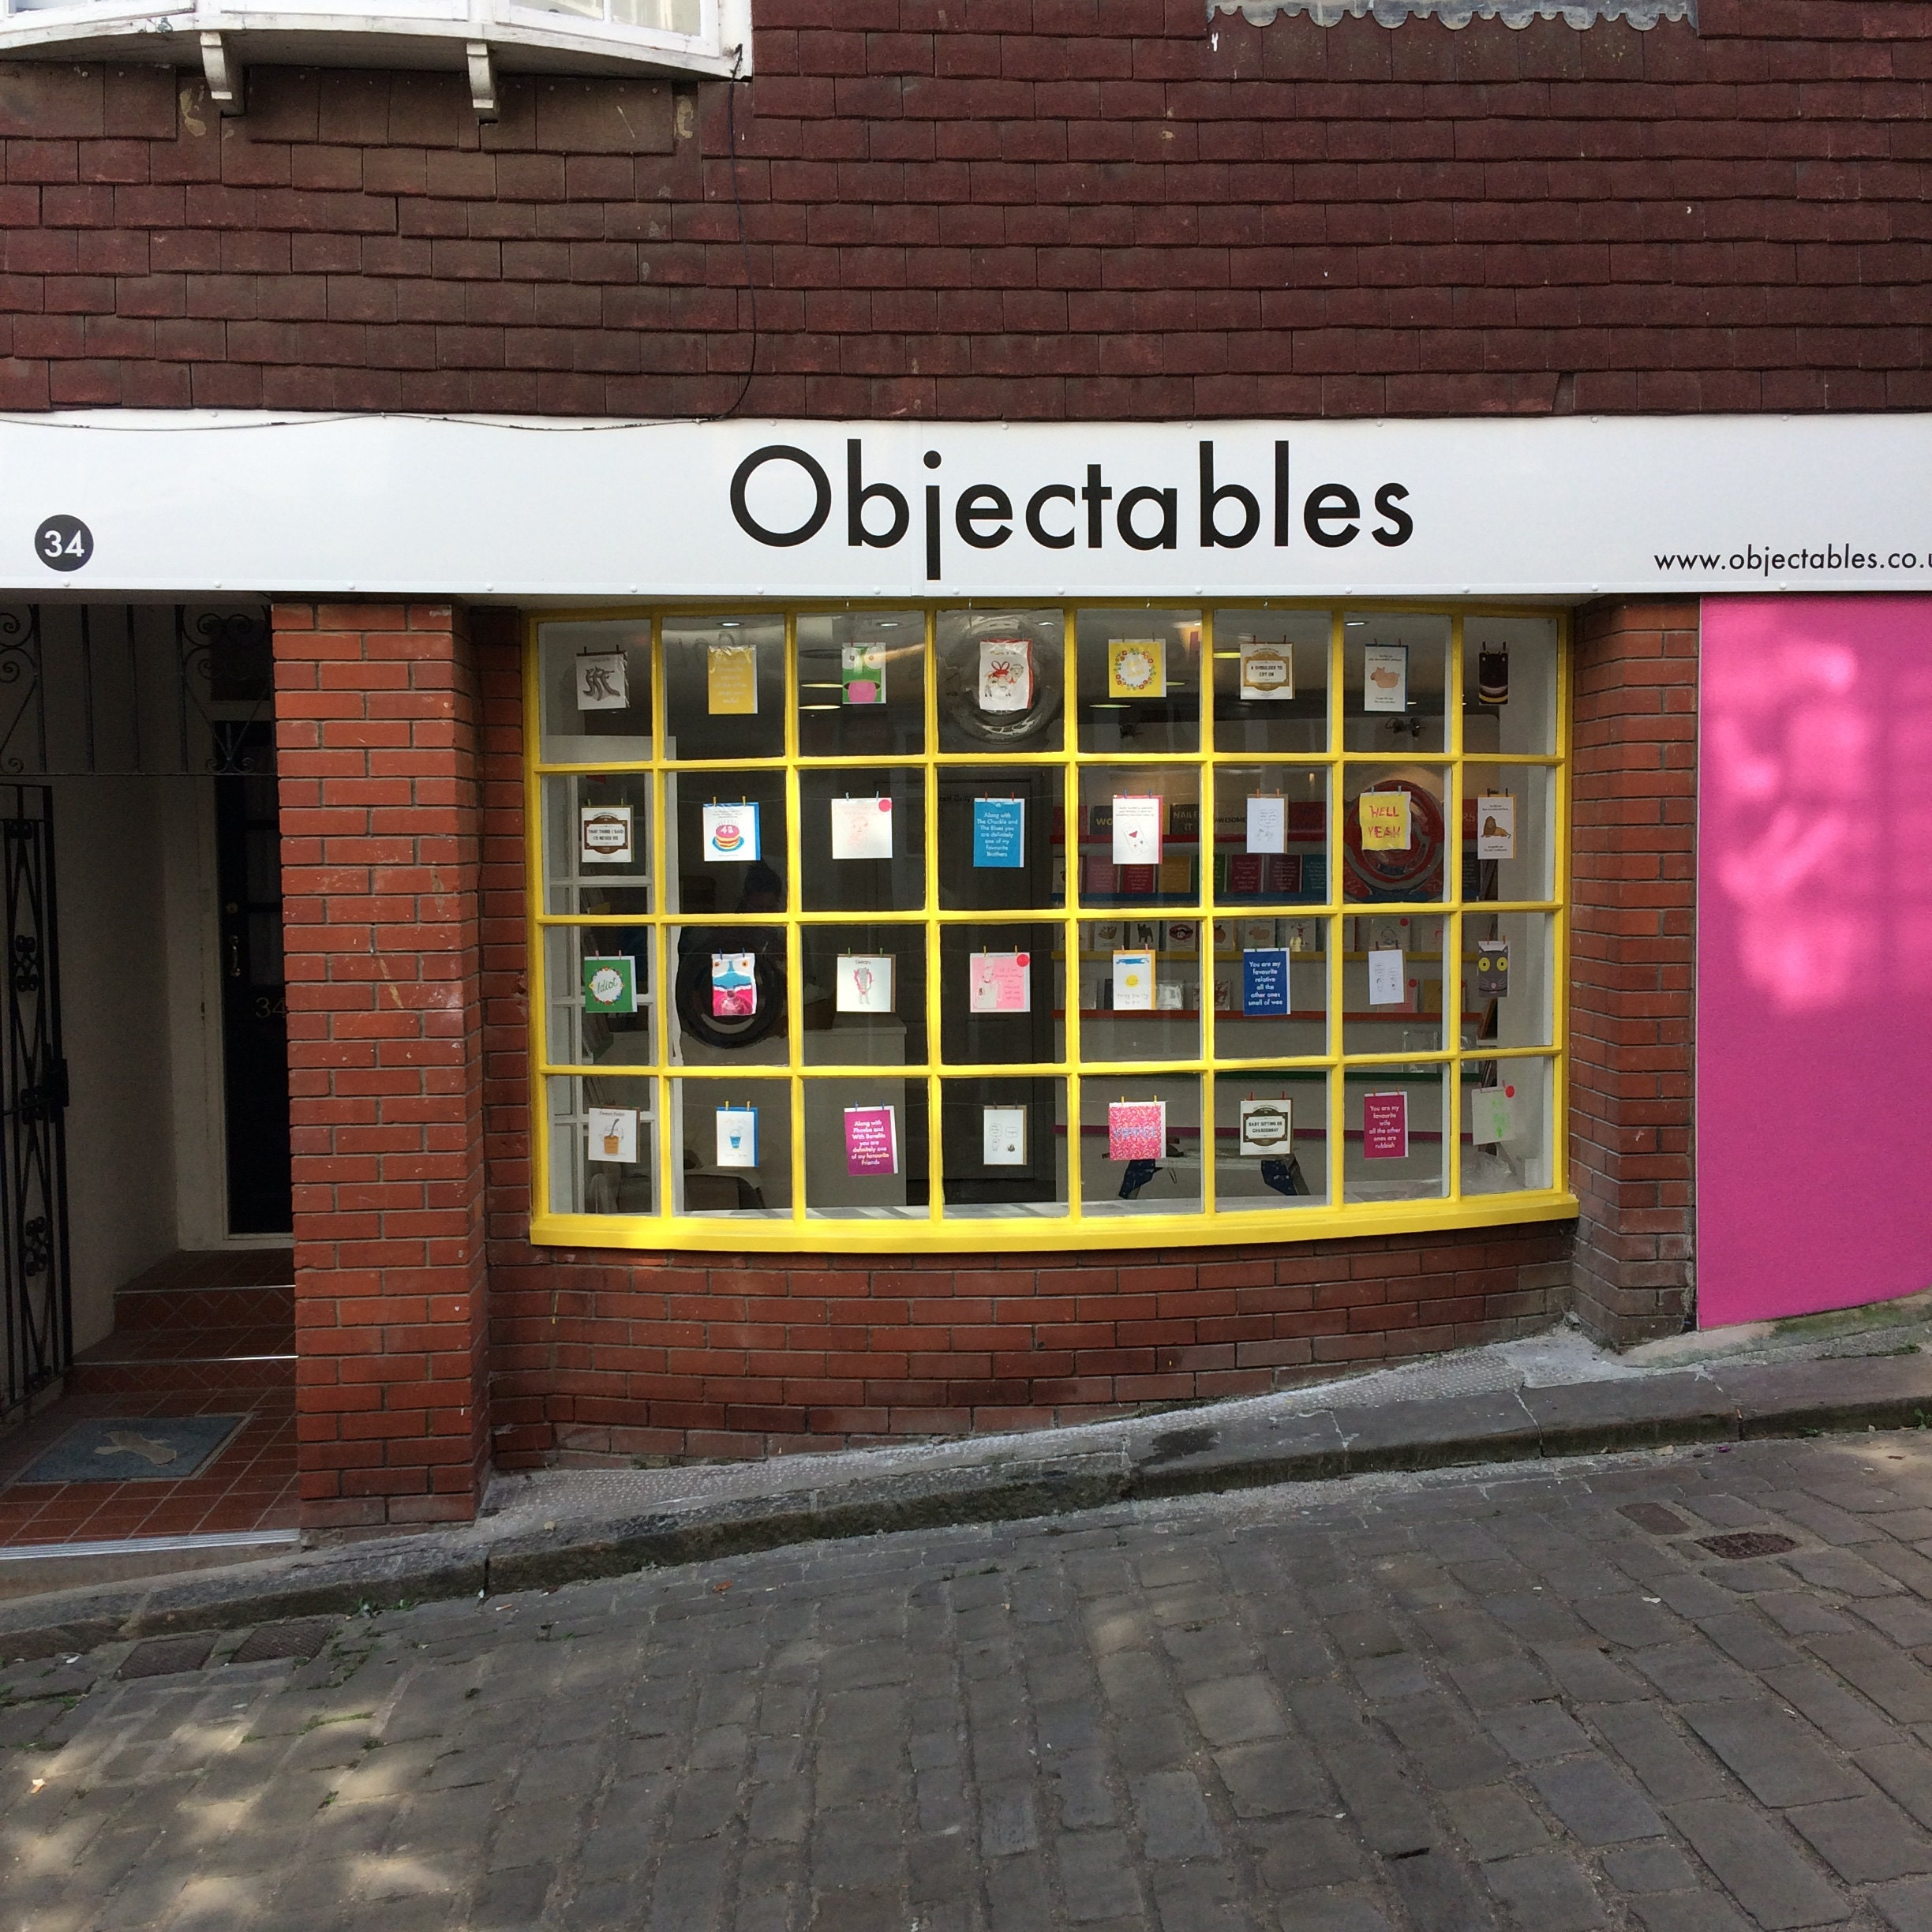 Objectables on The Old High Street, Folkestone